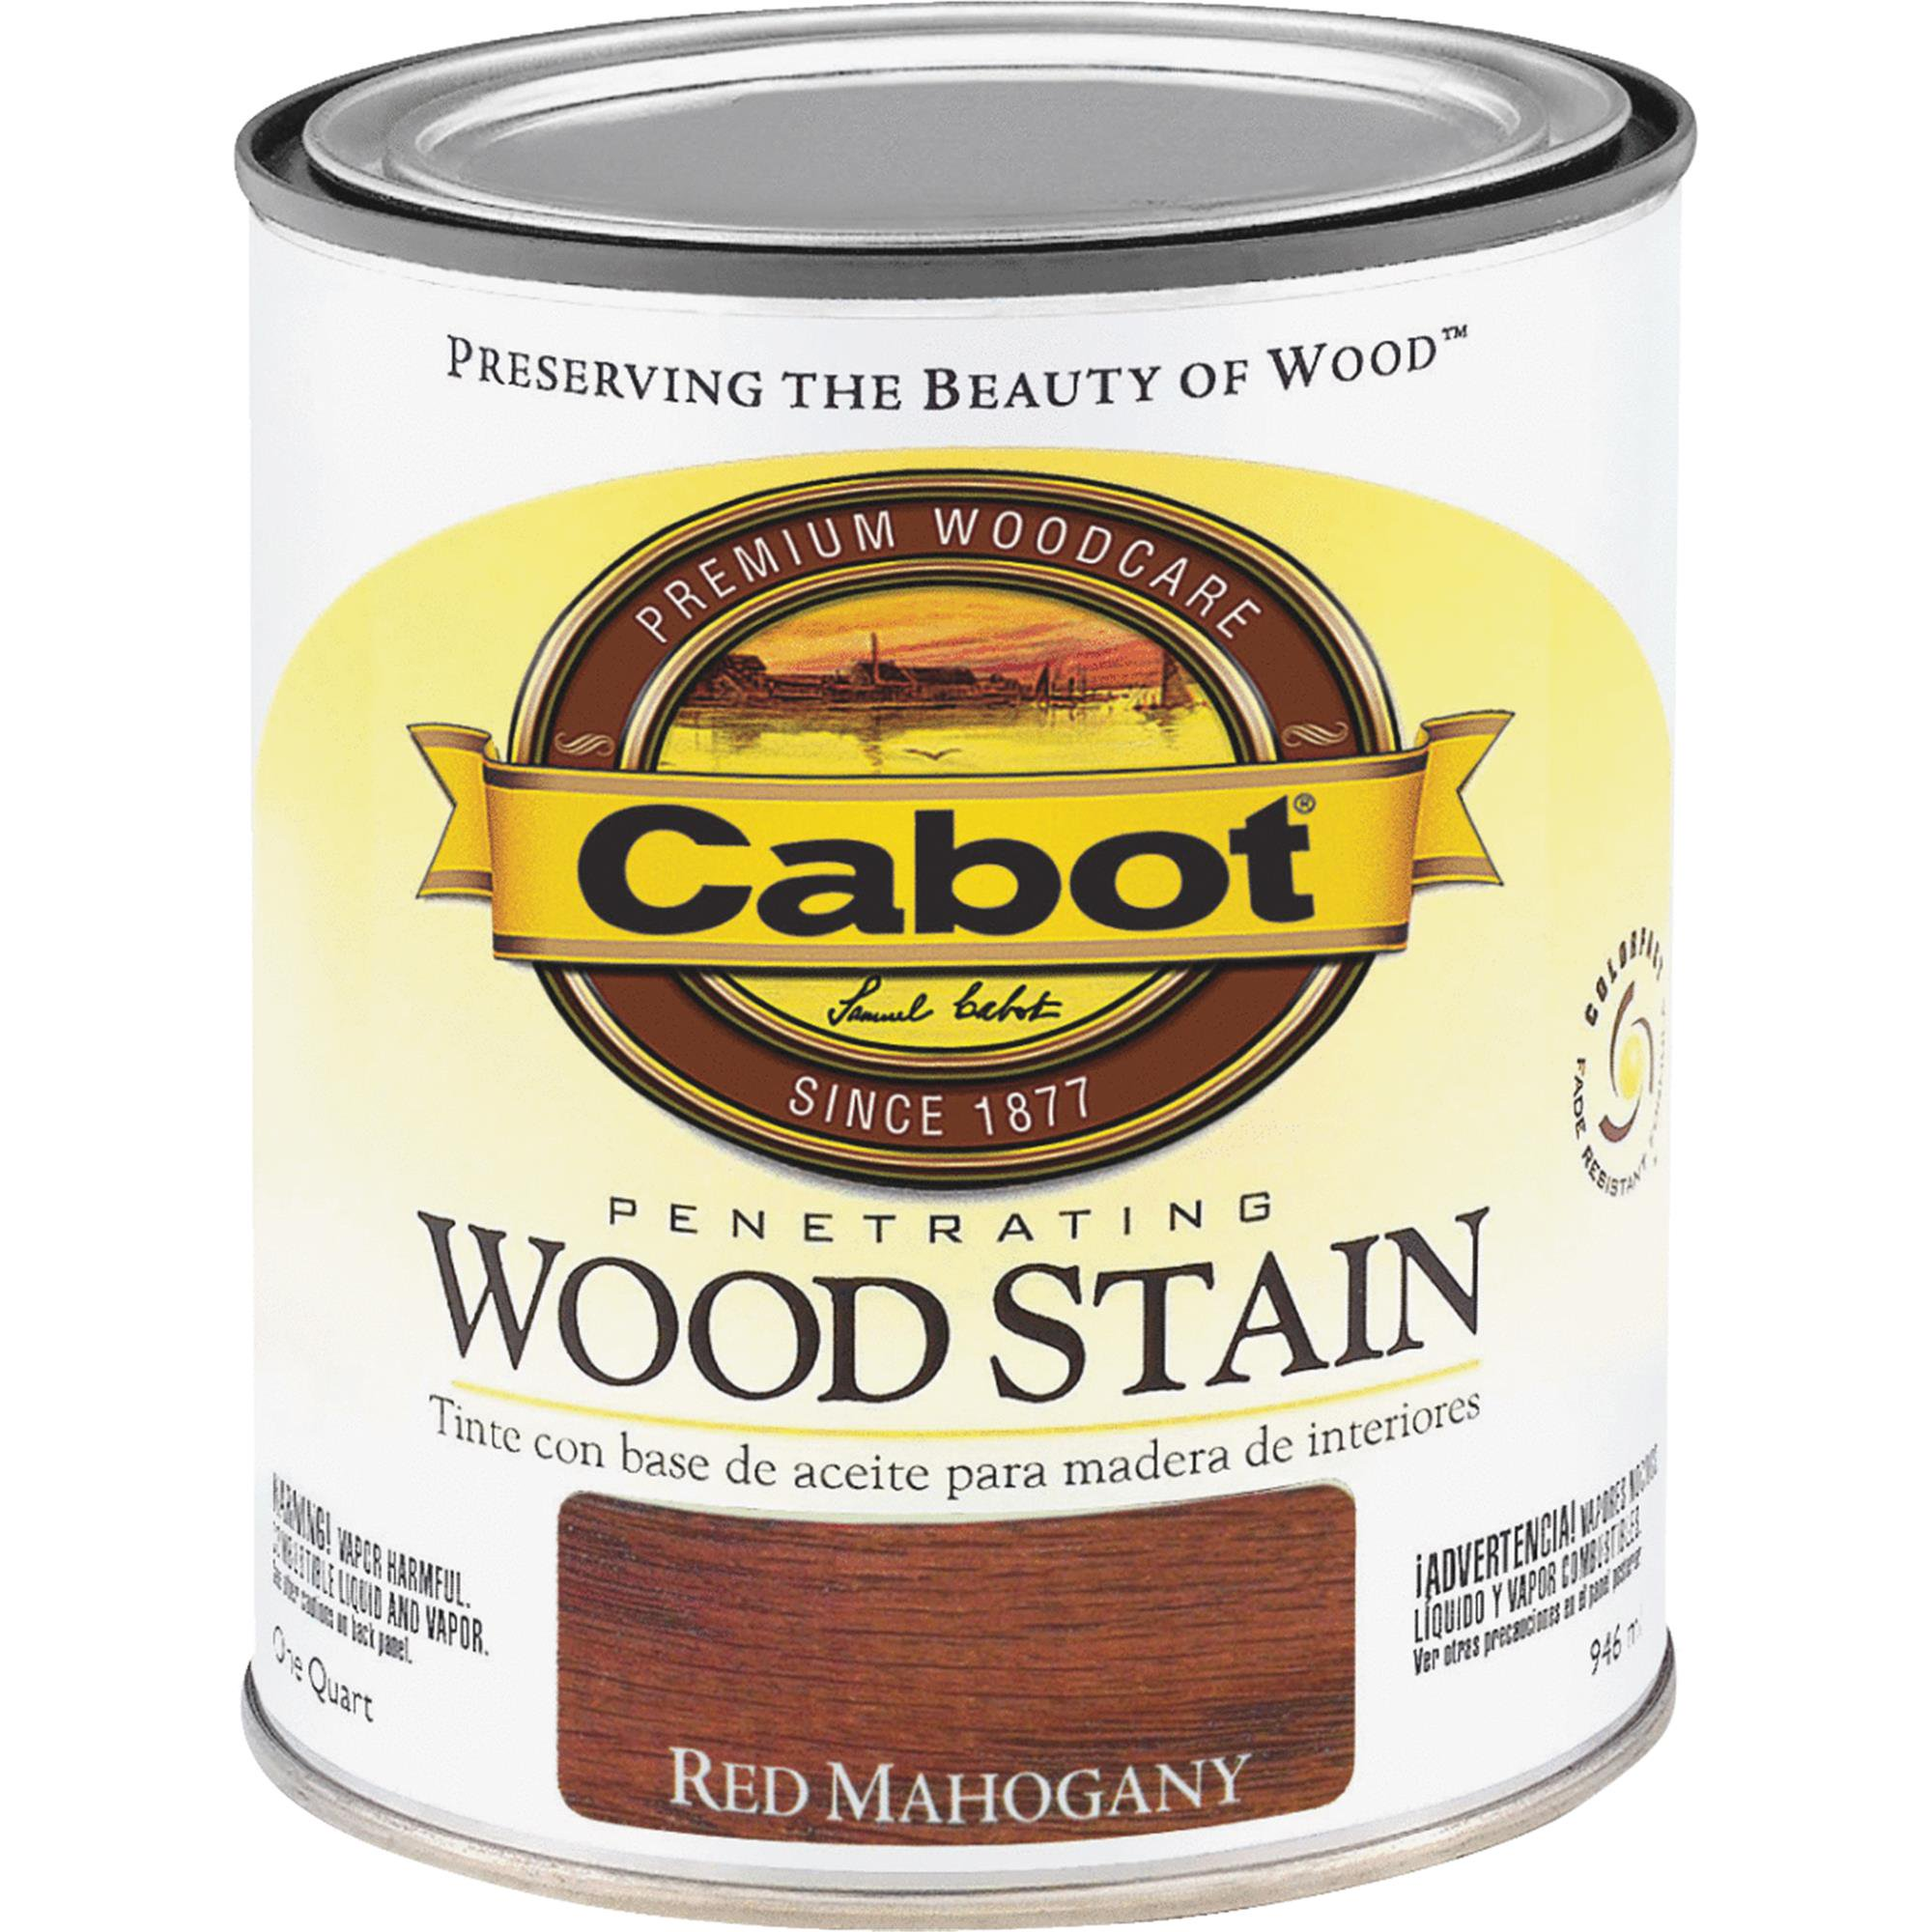 Cabot Penetrating Wood Stain